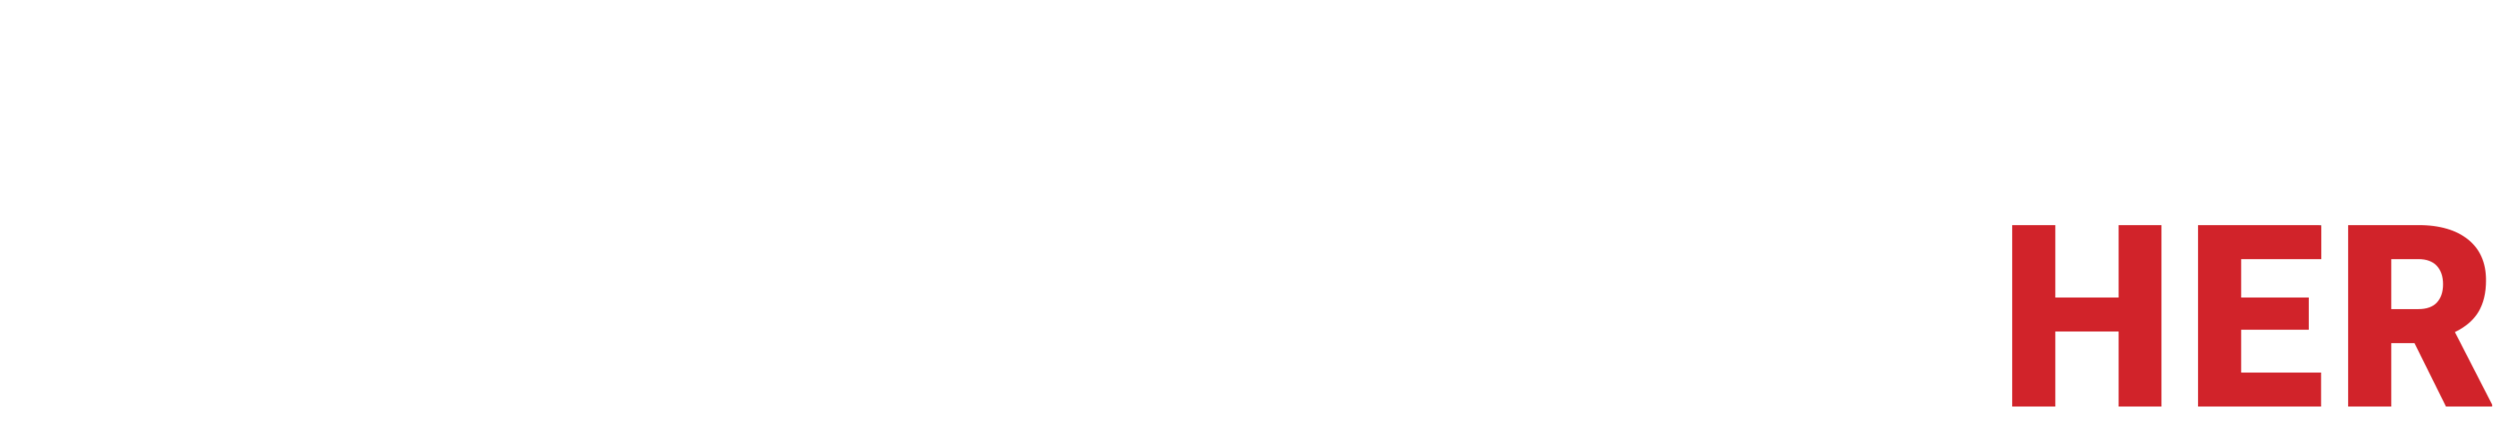 wwittrh logo site white.png